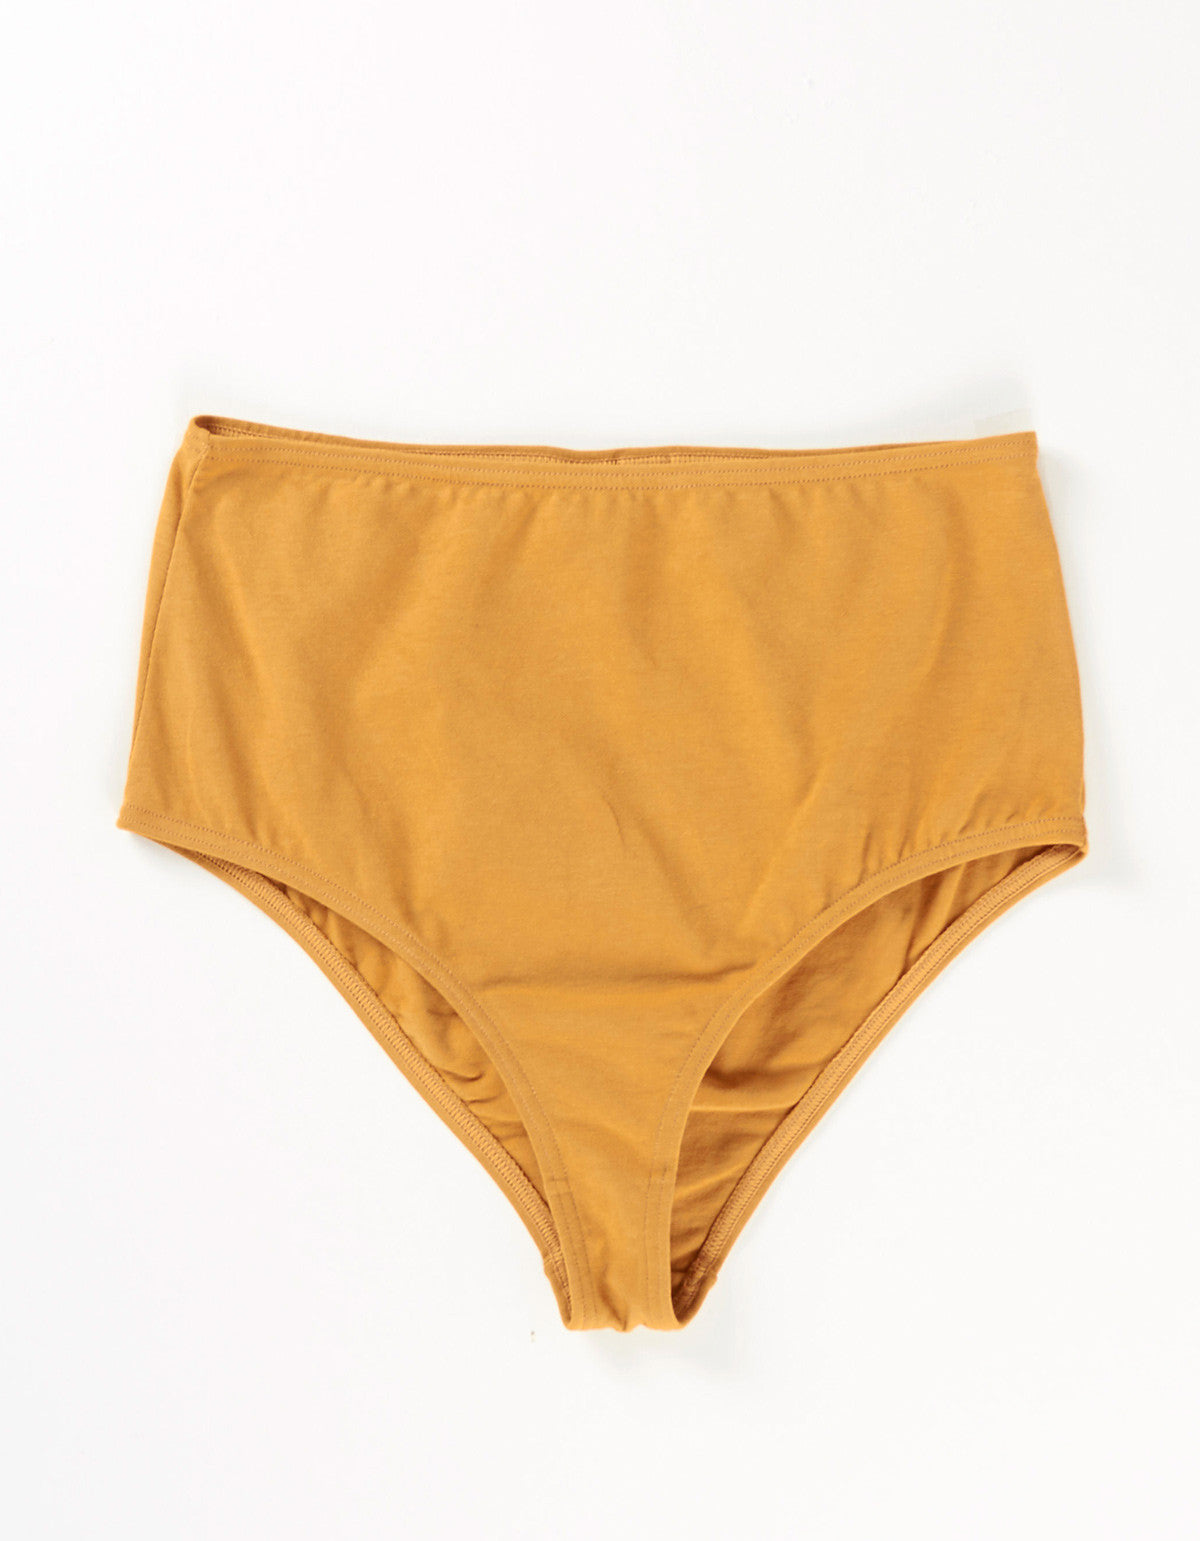 The Nude Label High Waisted Brief Caramel - Still Life - 1